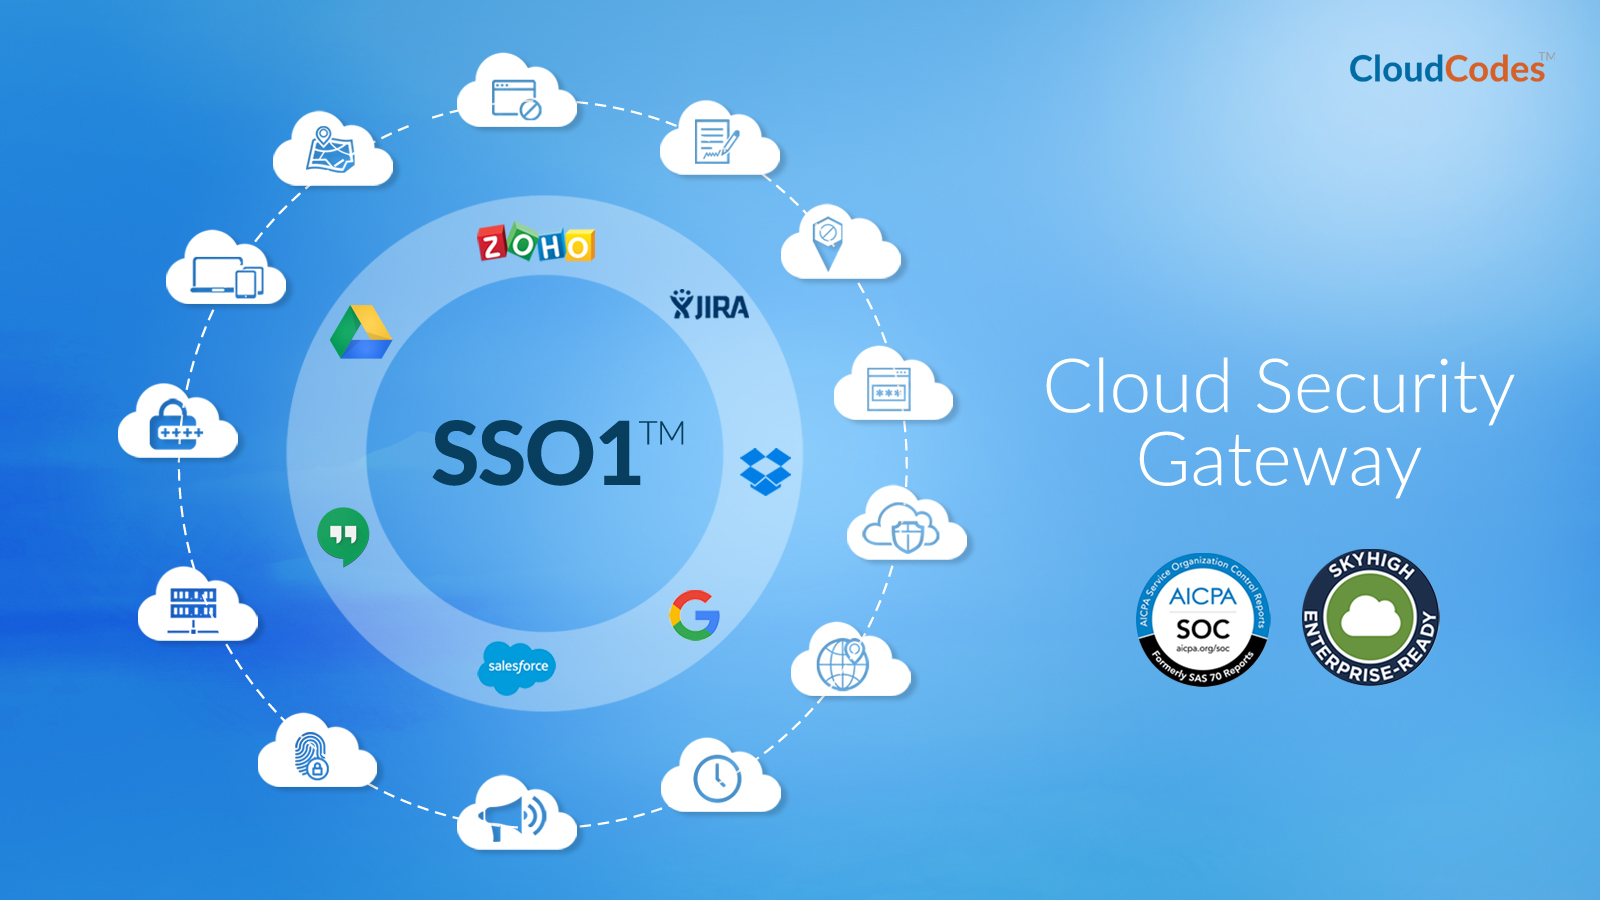 1. cloud security gateway - SSO1